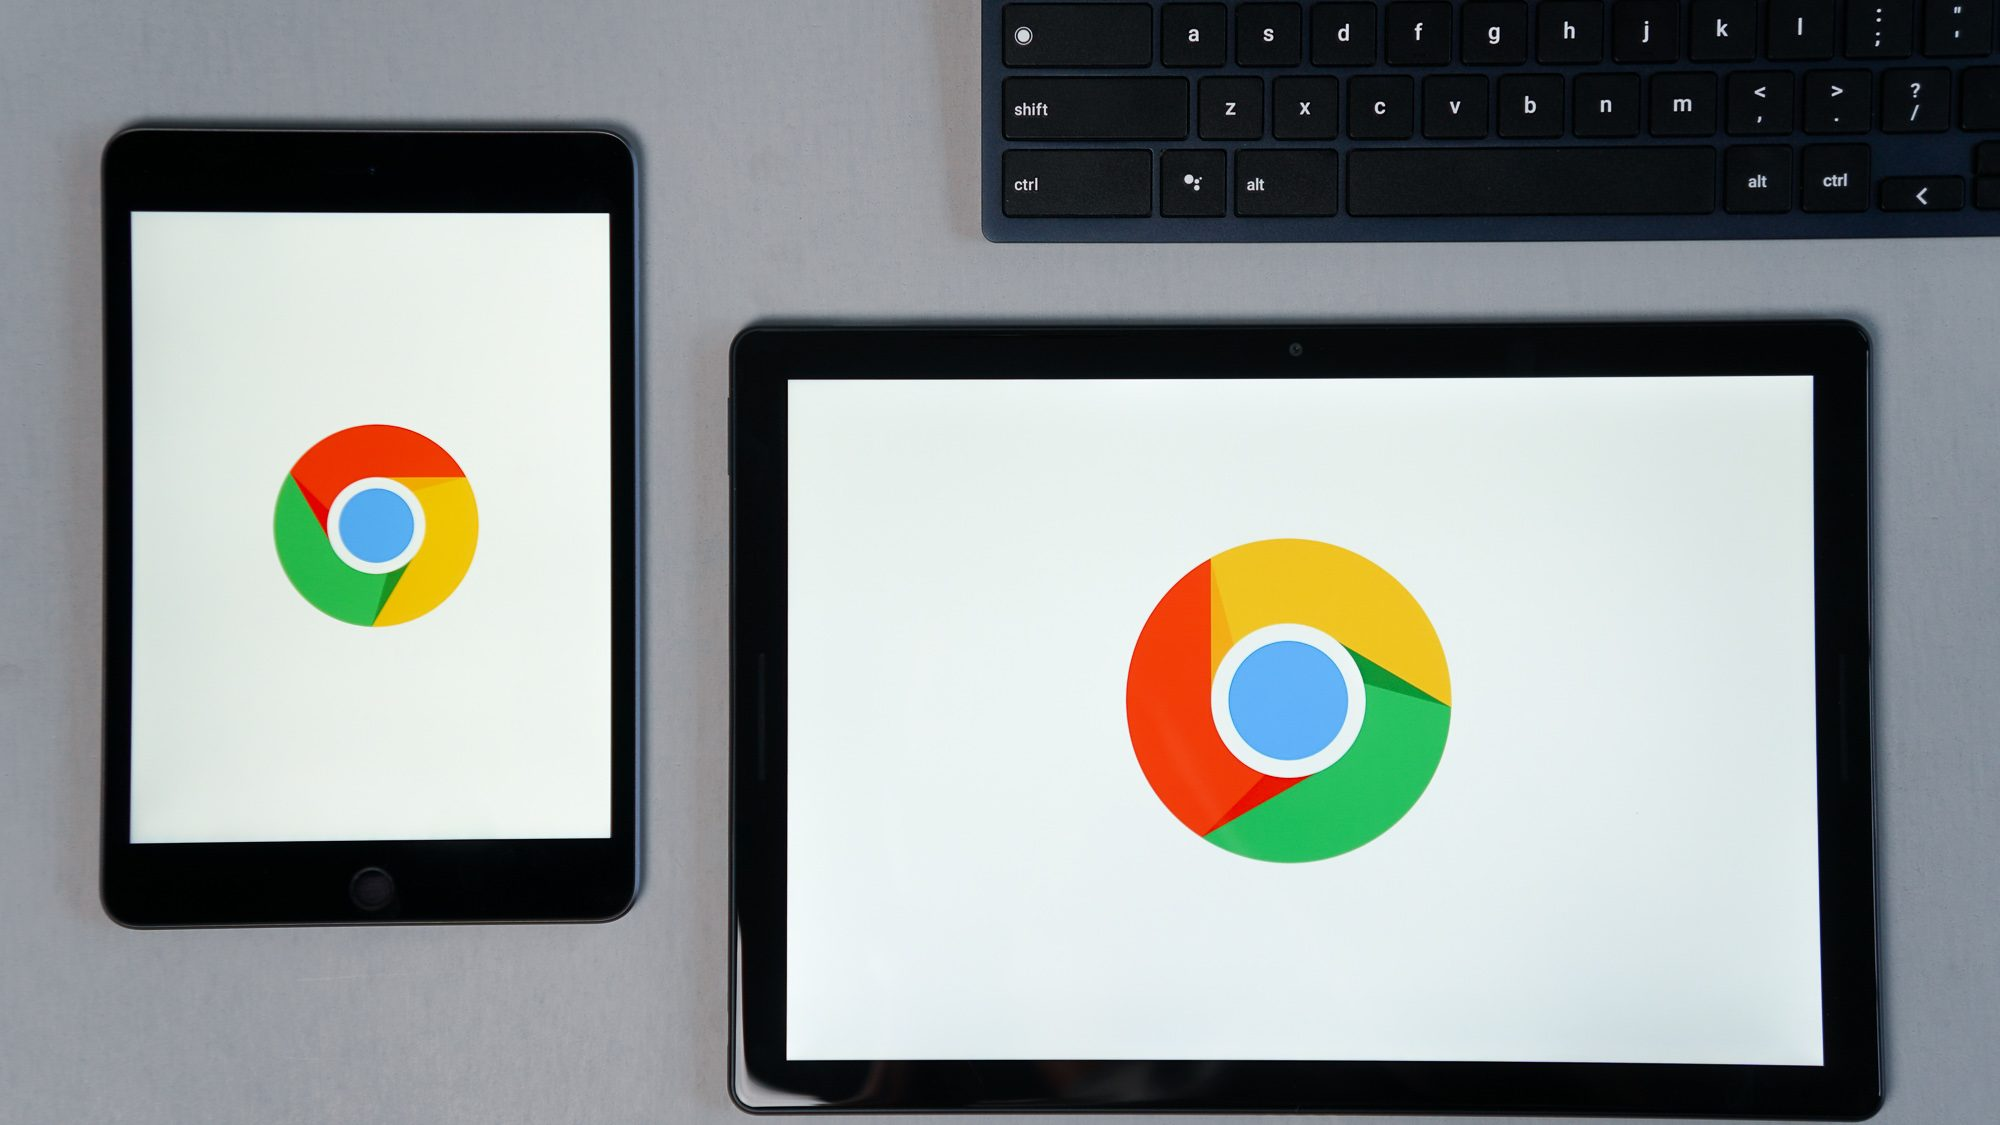 Snapdragon Chromebook 'Bubs' being tested with phone-sized display